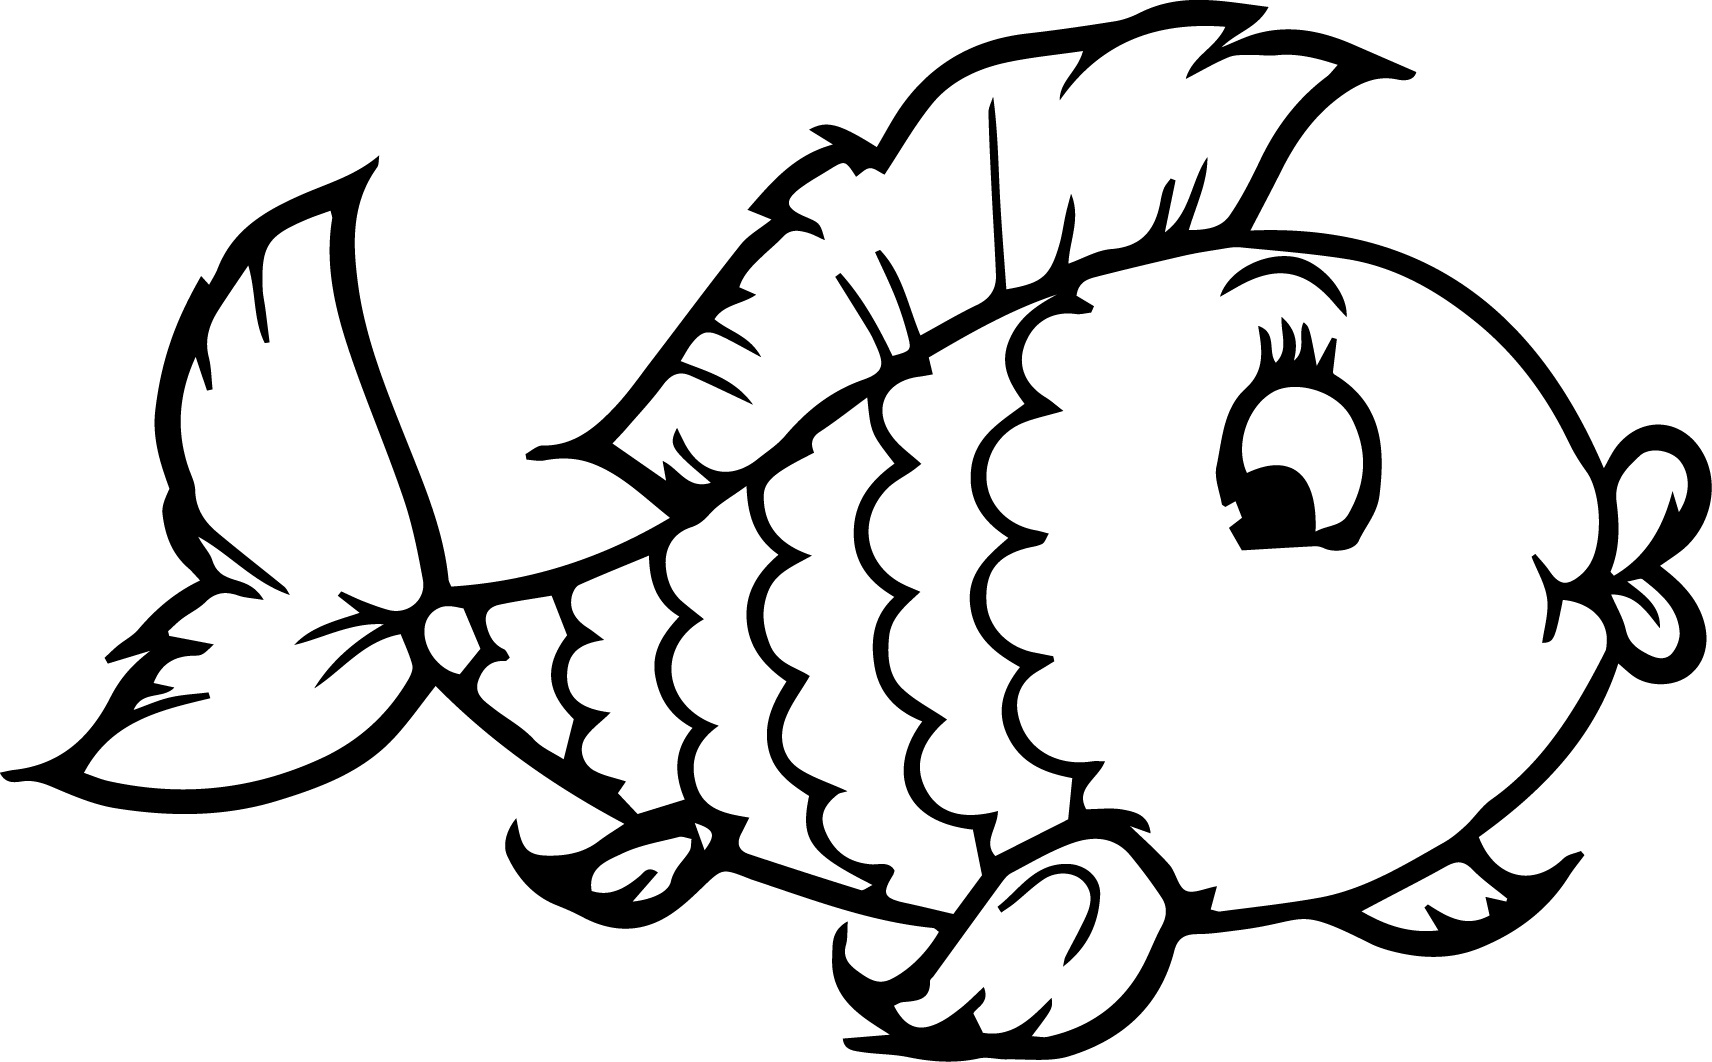 Fish Coloring Pages 2 | Coloring Pages To Print | Fish coloring ... | 1062x1712